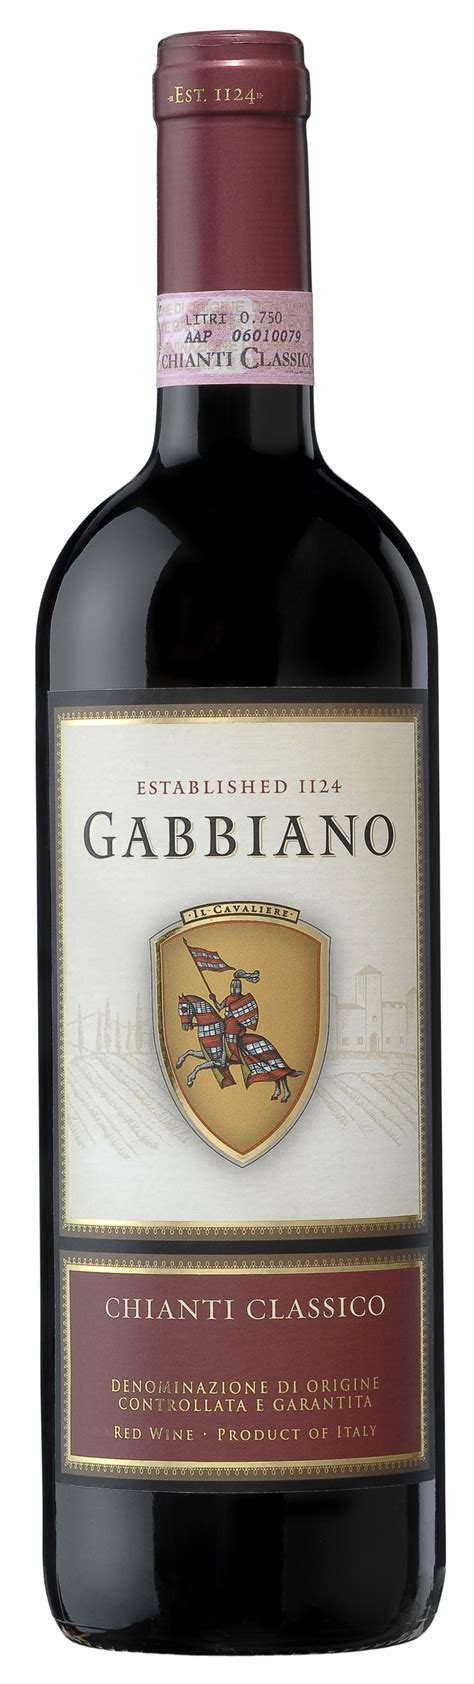 gabbiano chianti classico di gabbiano a wine inspired vacation to italy